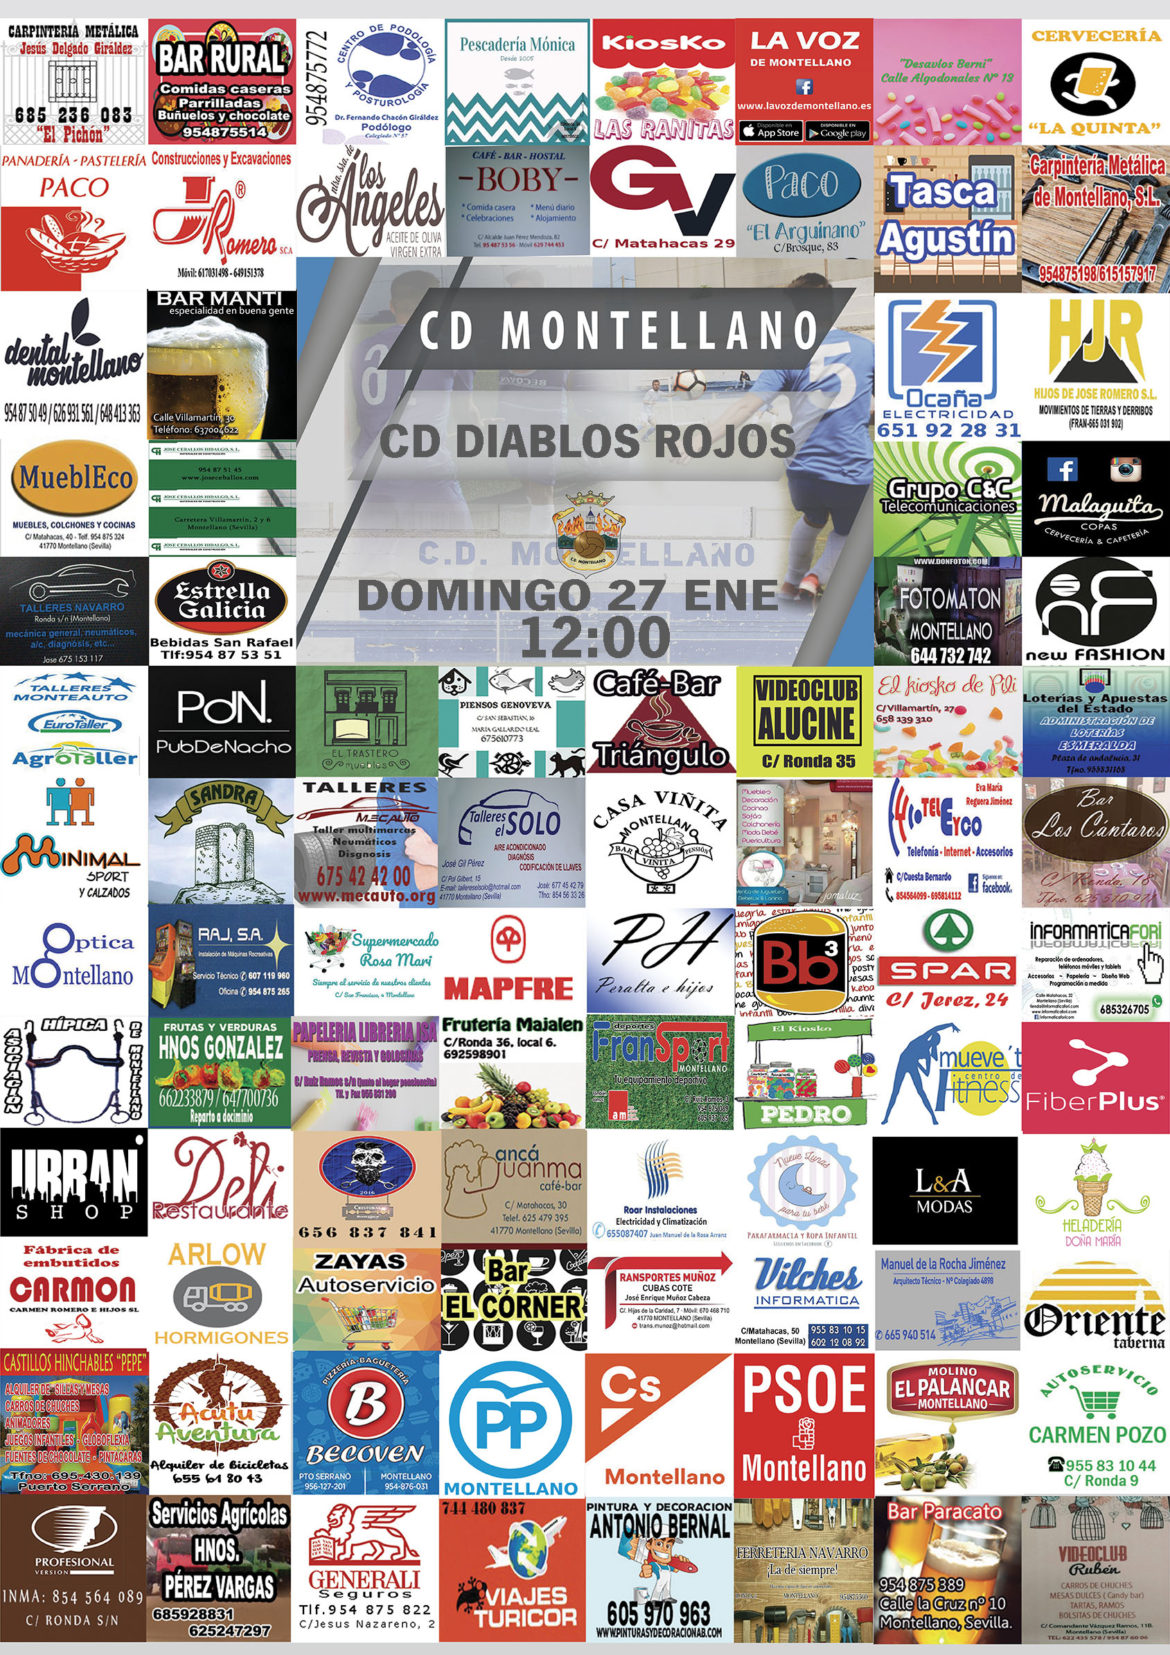 cd montellano vs cd diablos rojos